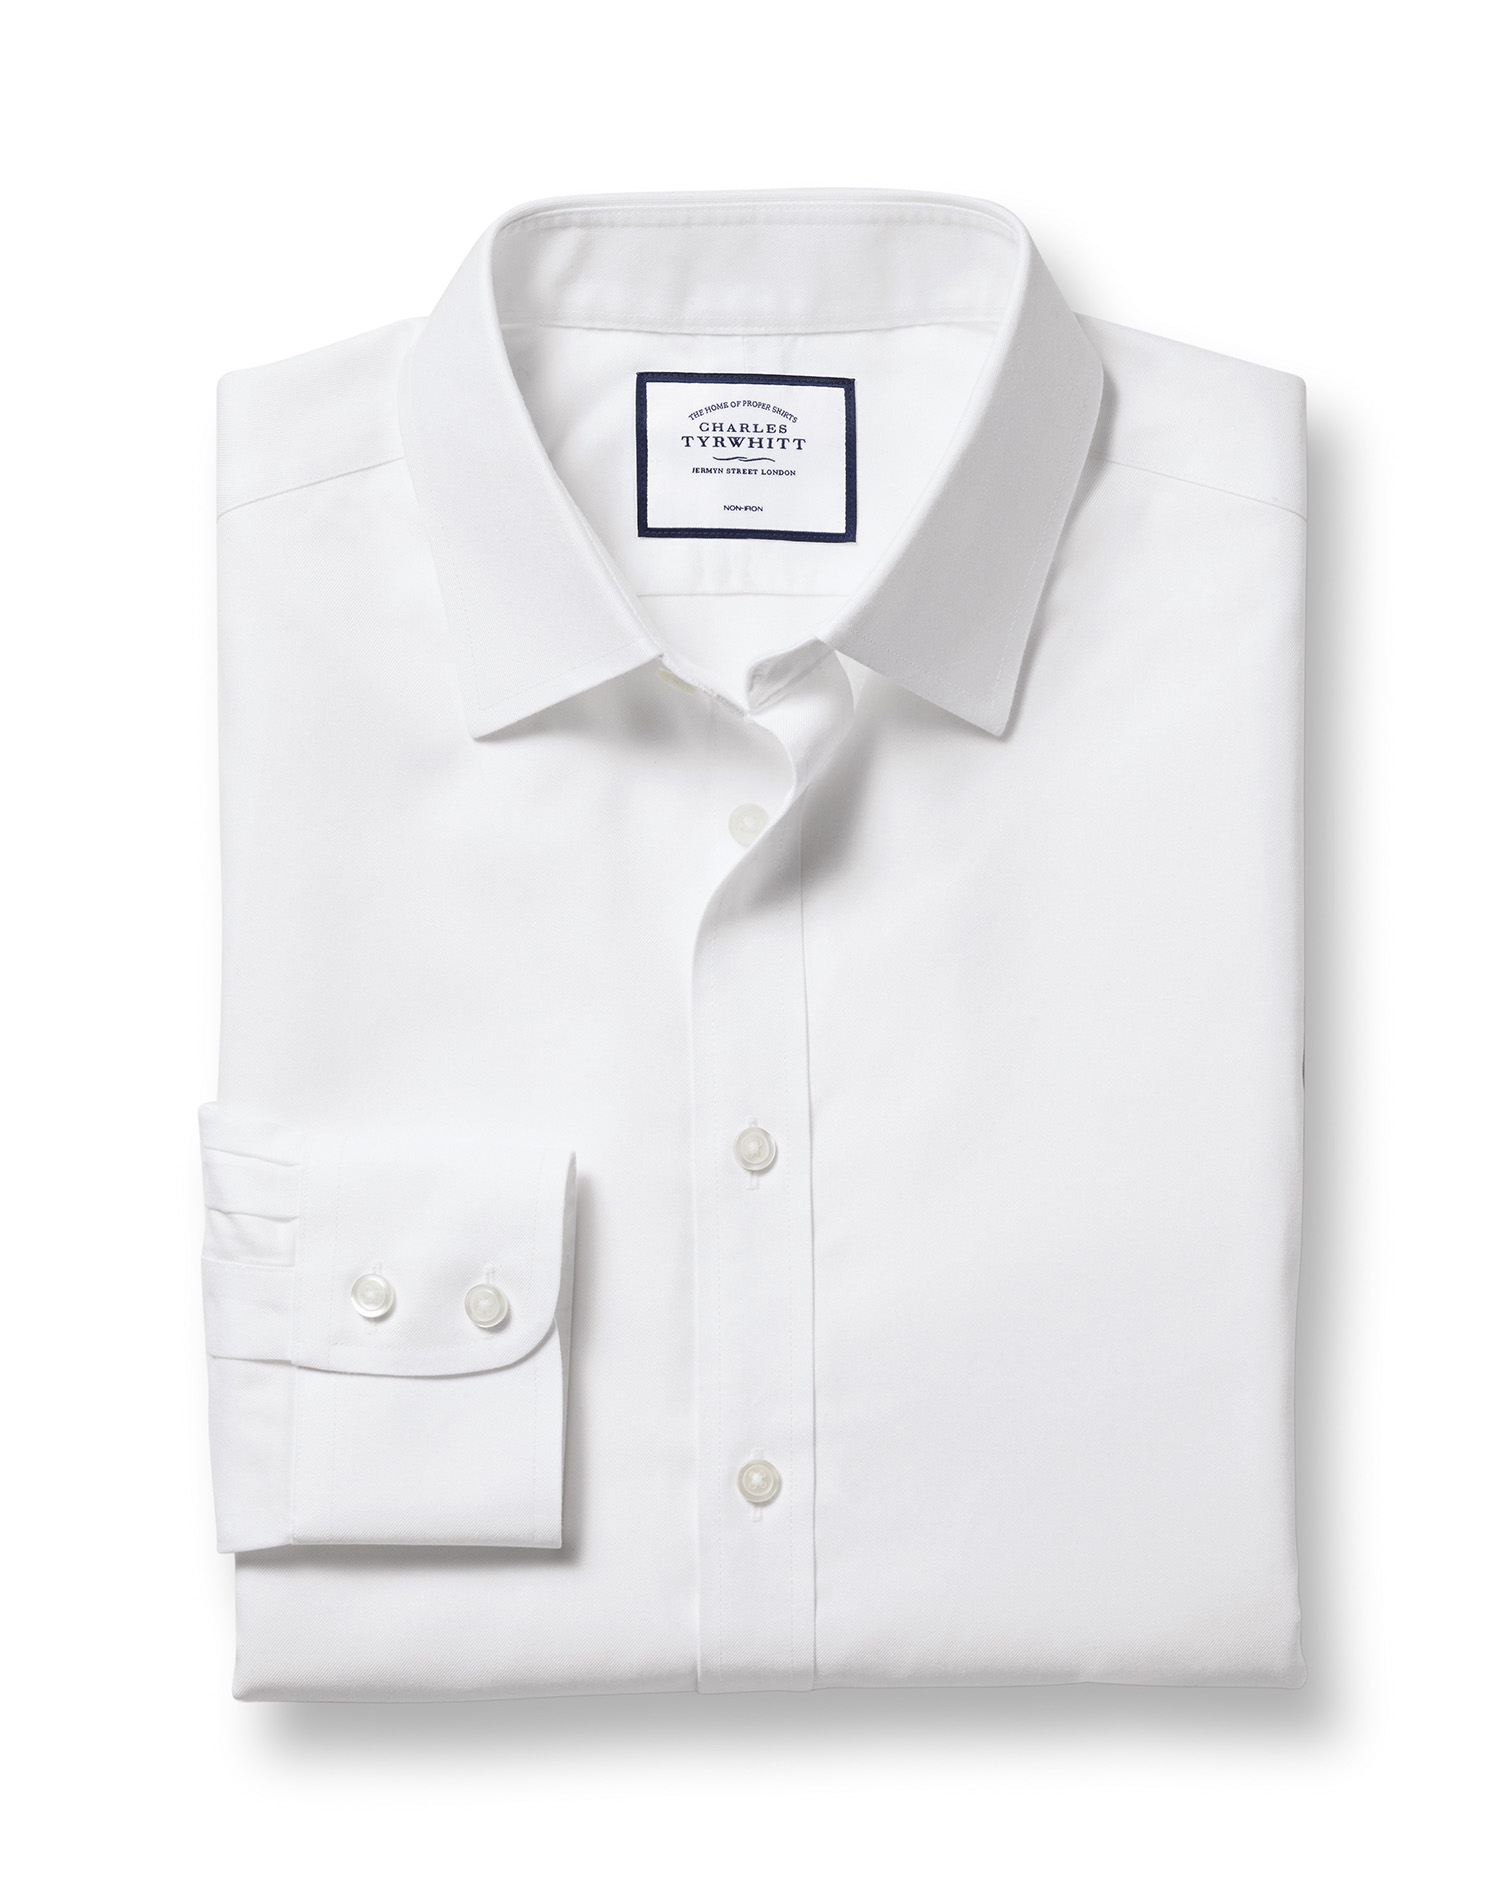 Classic Fit White Non-Iron Twill Cotton Formal Shirt Double Cuff Size 19/35 by Charles Tyrwhitt